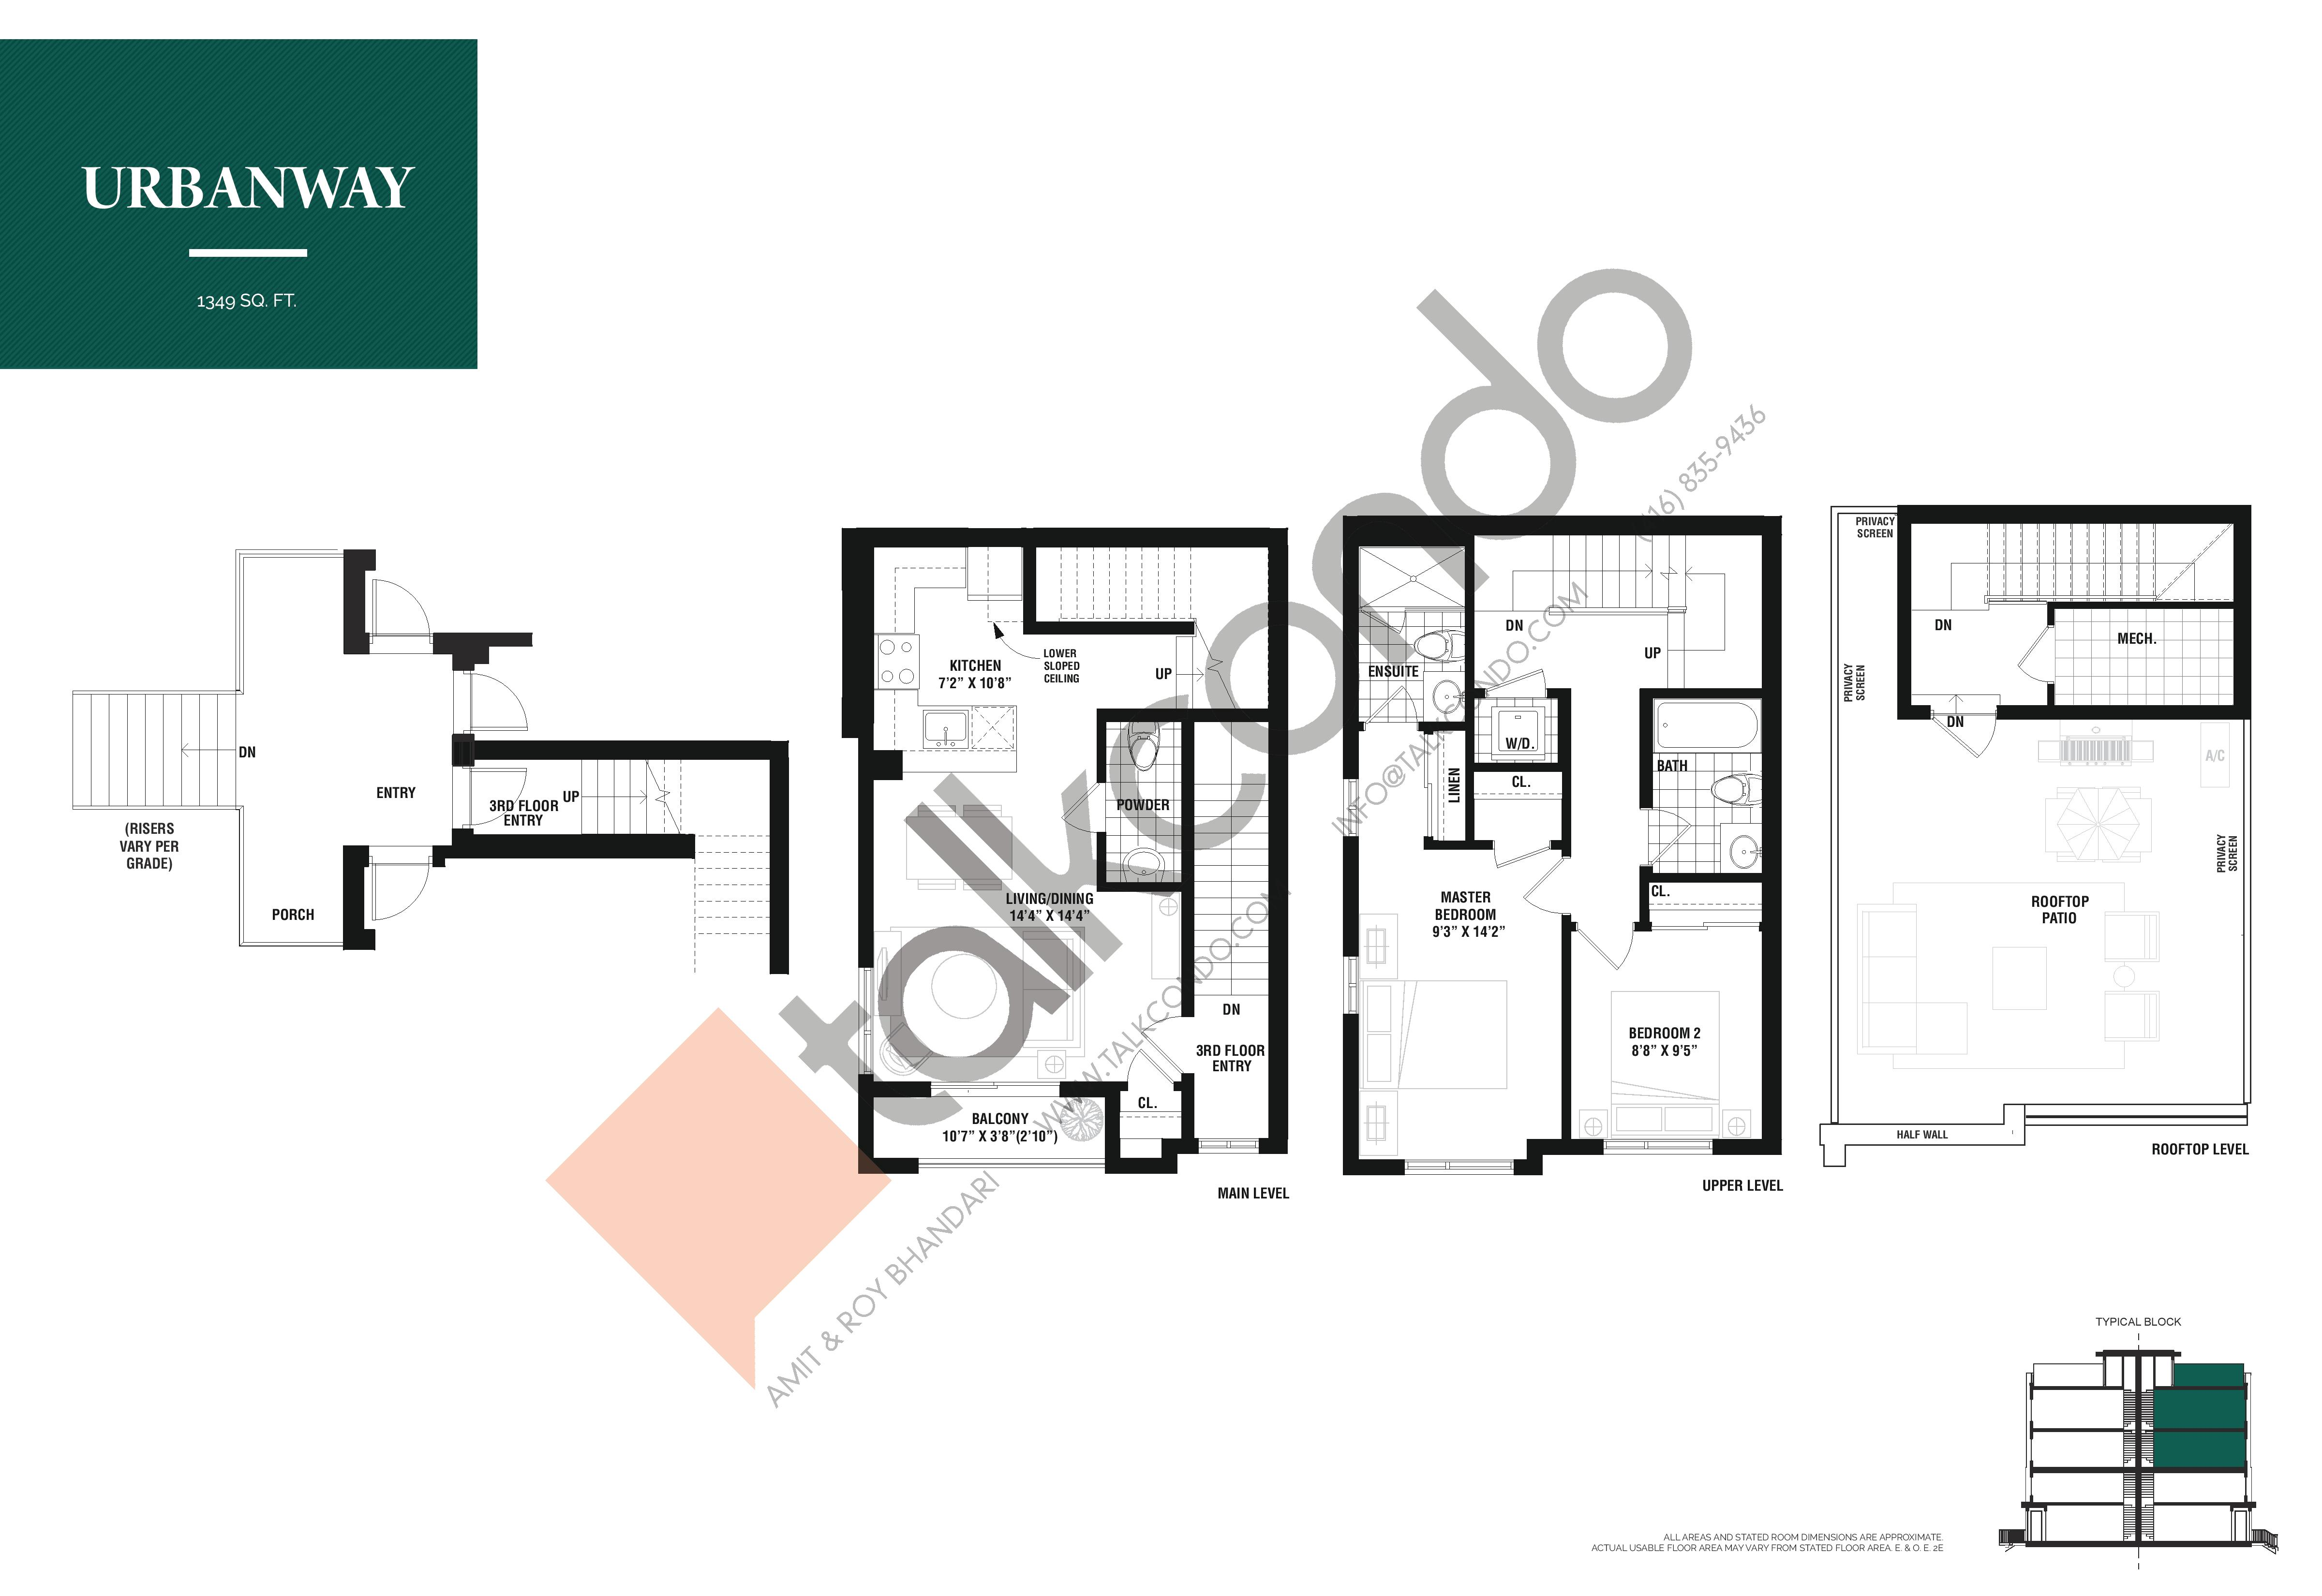 Urbanway Floor Plan at The Way Urban Towns - 1349 sq.ft